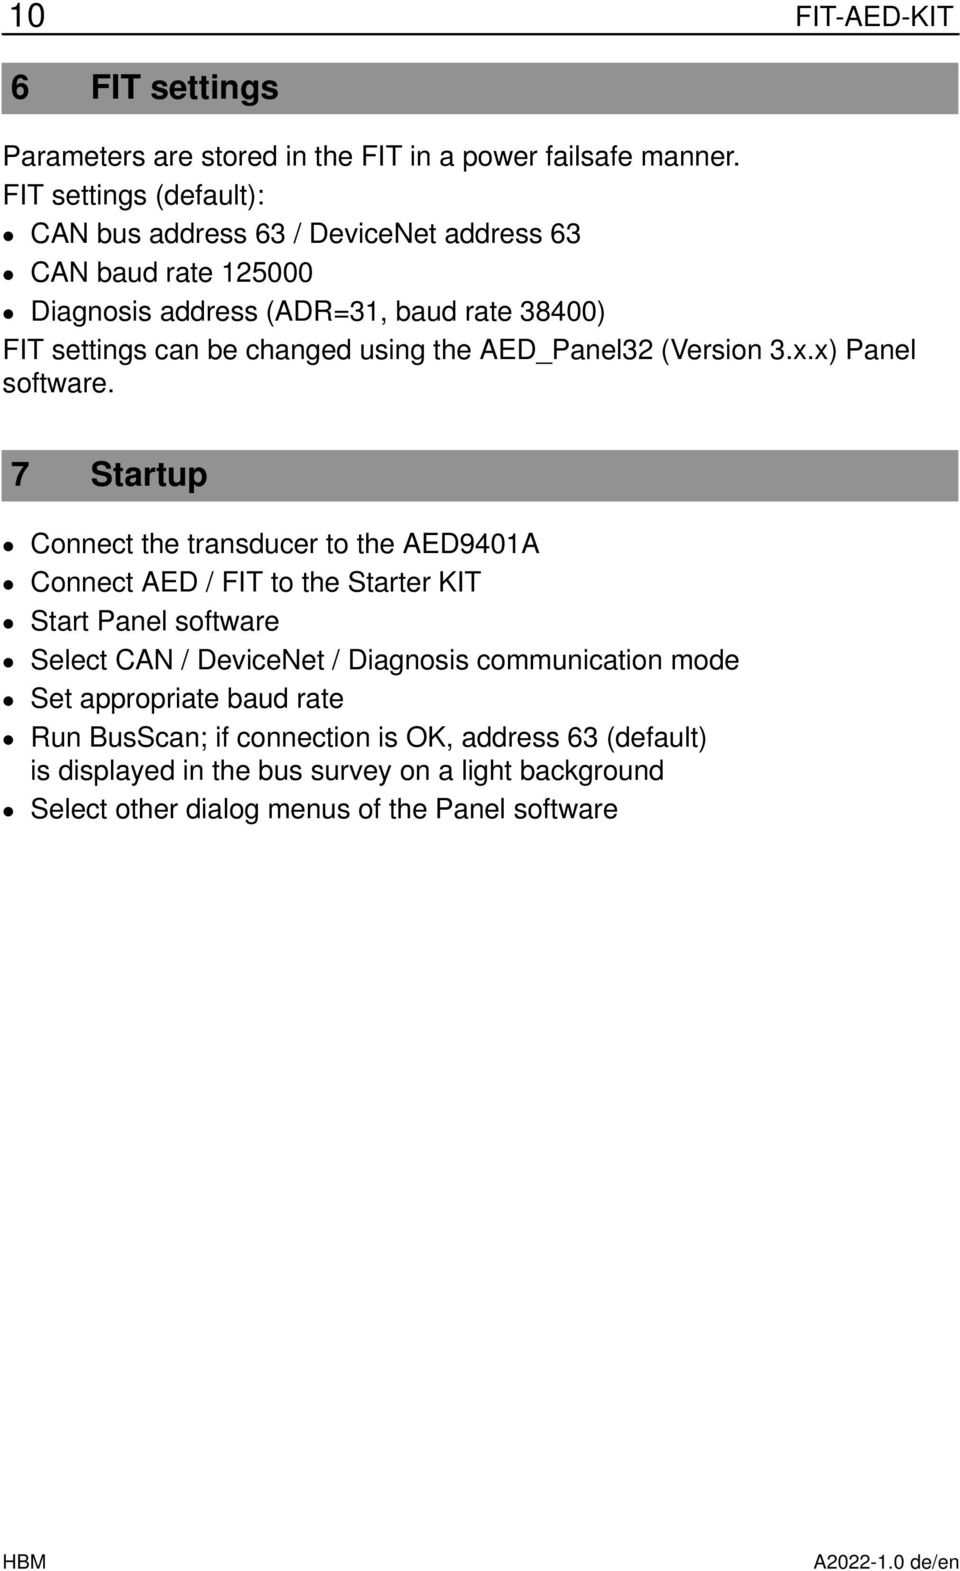 the AE_Panel32 (Version 3.x.x) Panel software.